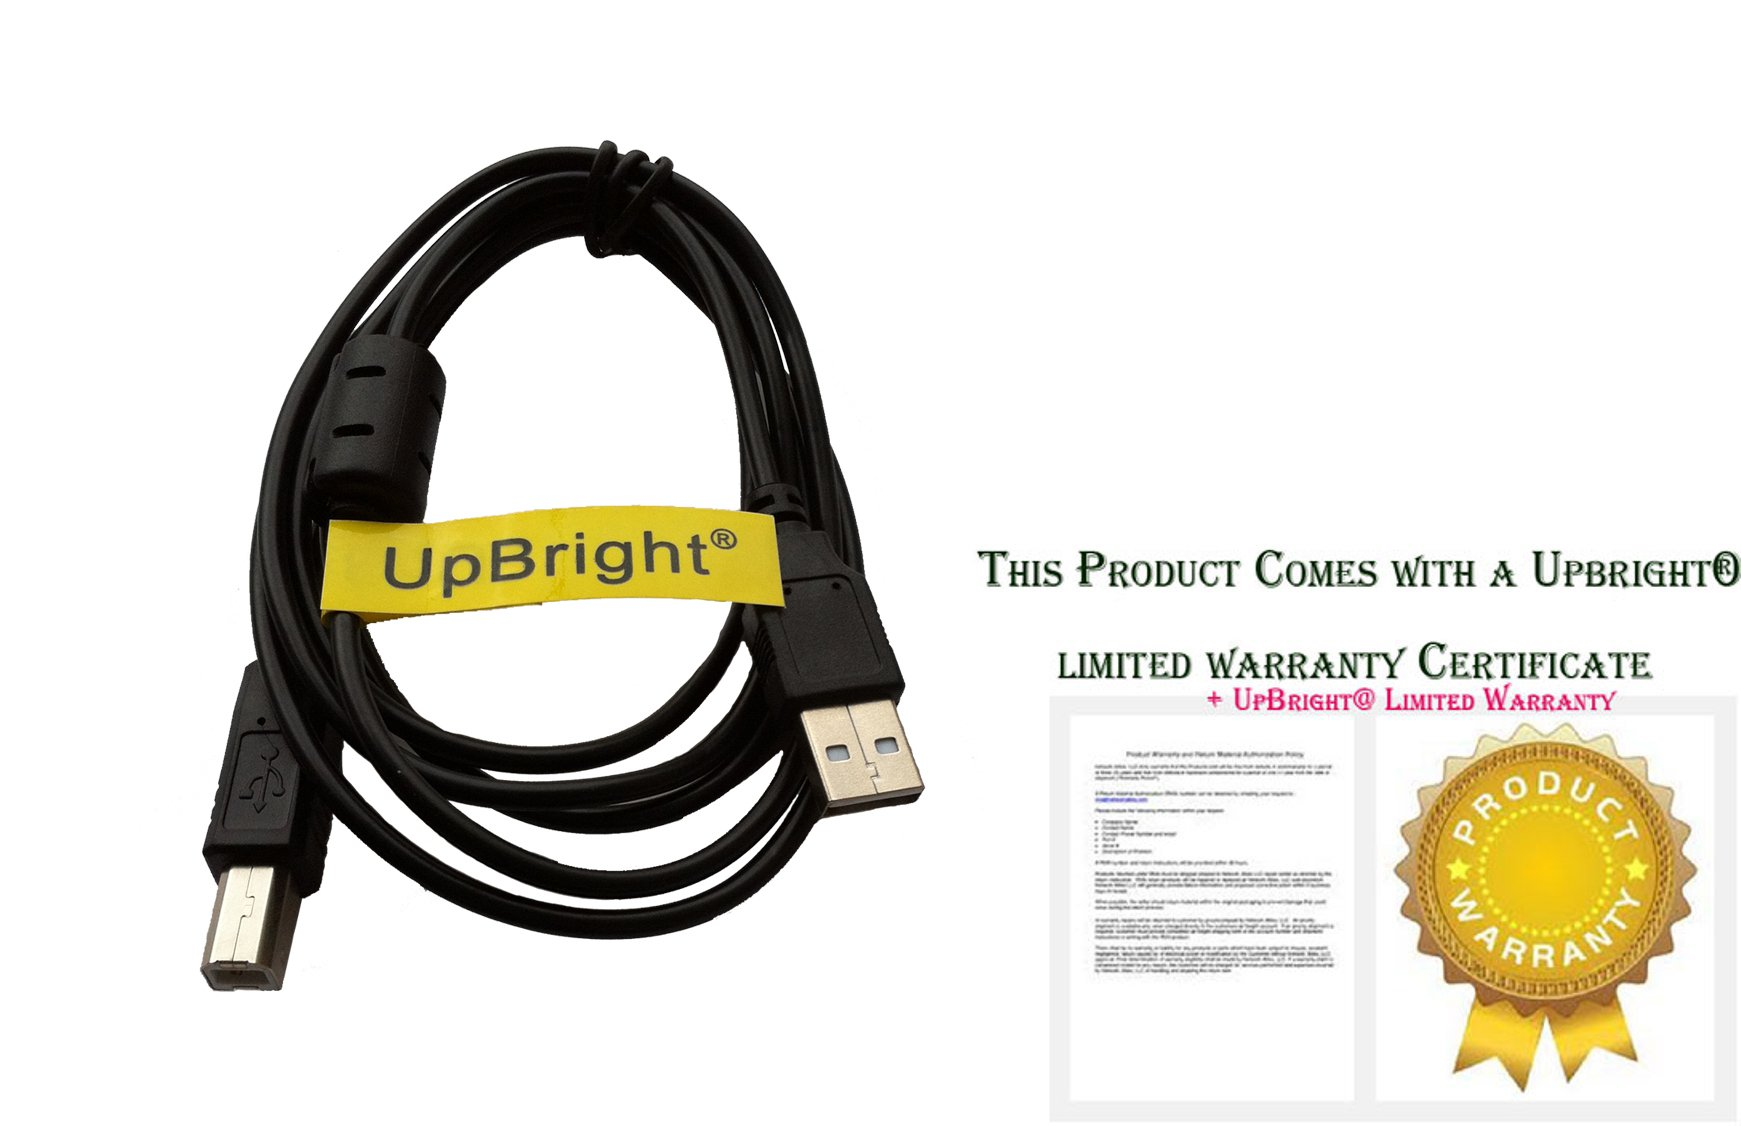 UpBright New USB 2.0 Cable PC Laptop Data Cord For DigiTech RP500 Guitar Integrated Effect Pedal / DigiTech RP155 RP255 RP355 Pedal Modeling Guitar Processor